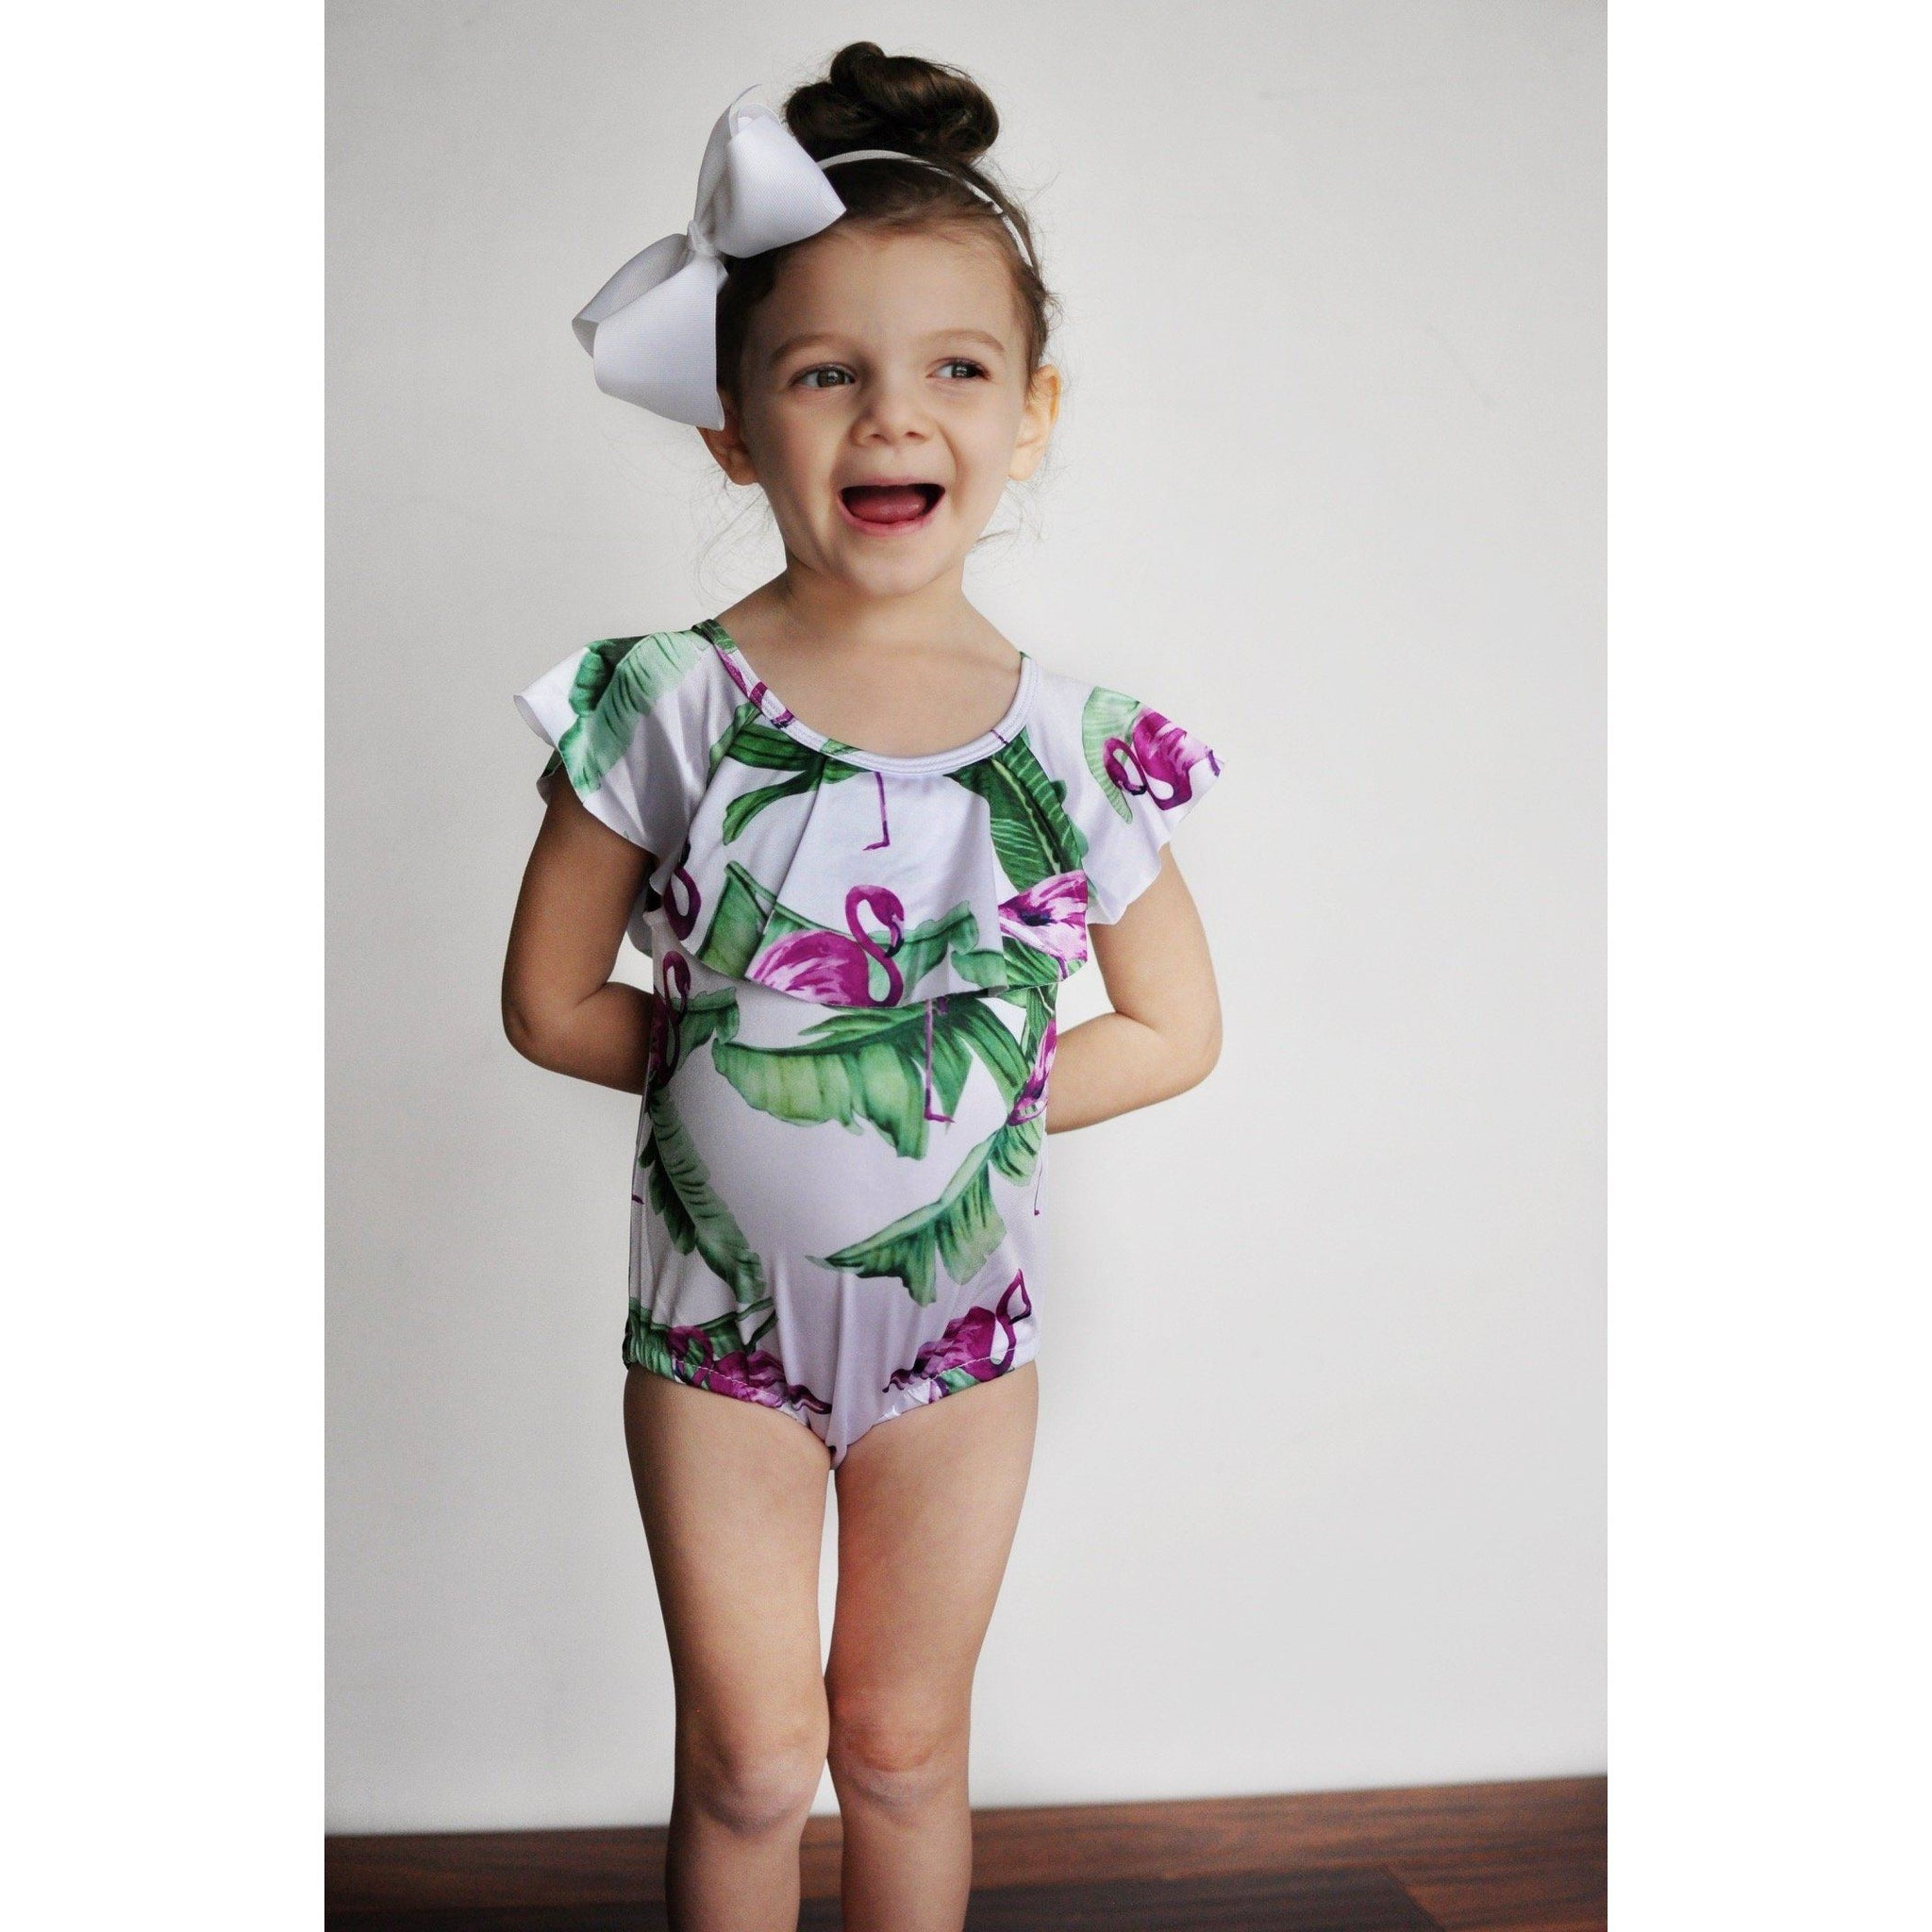 Adorable Essentials, Flamingo Girl Swimsuit,Swimsuit,Adorable Essentials, LLC